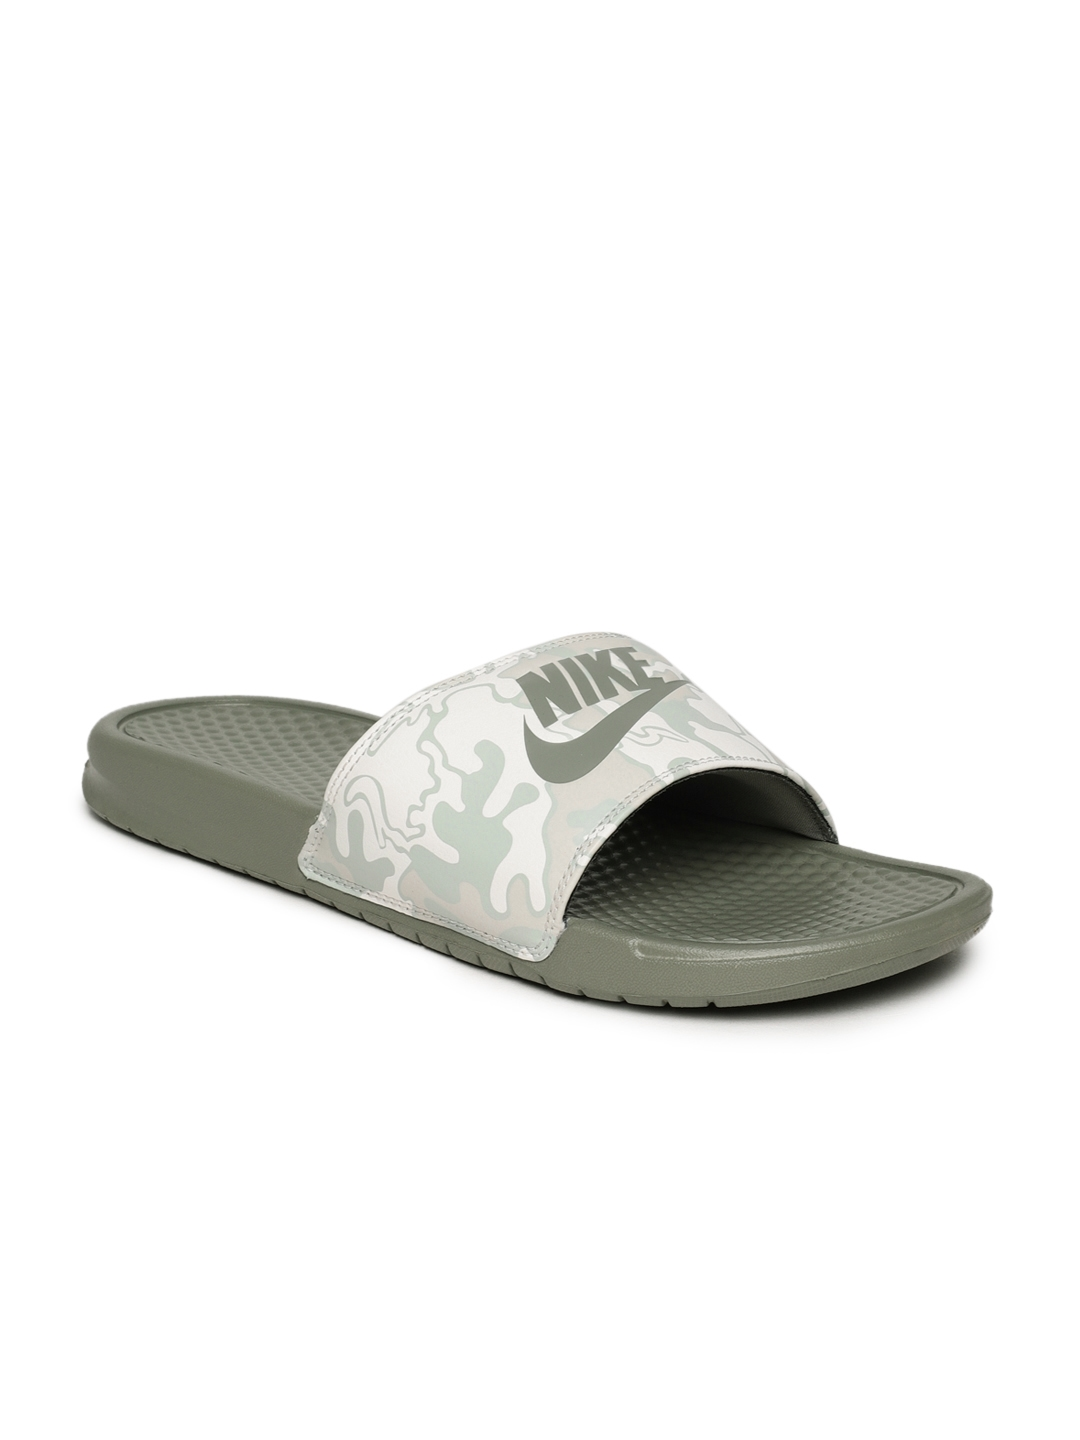 4a88653efc05 Buy Nike Men Olive Green Printed Sliders - Flip Flops for Men ...